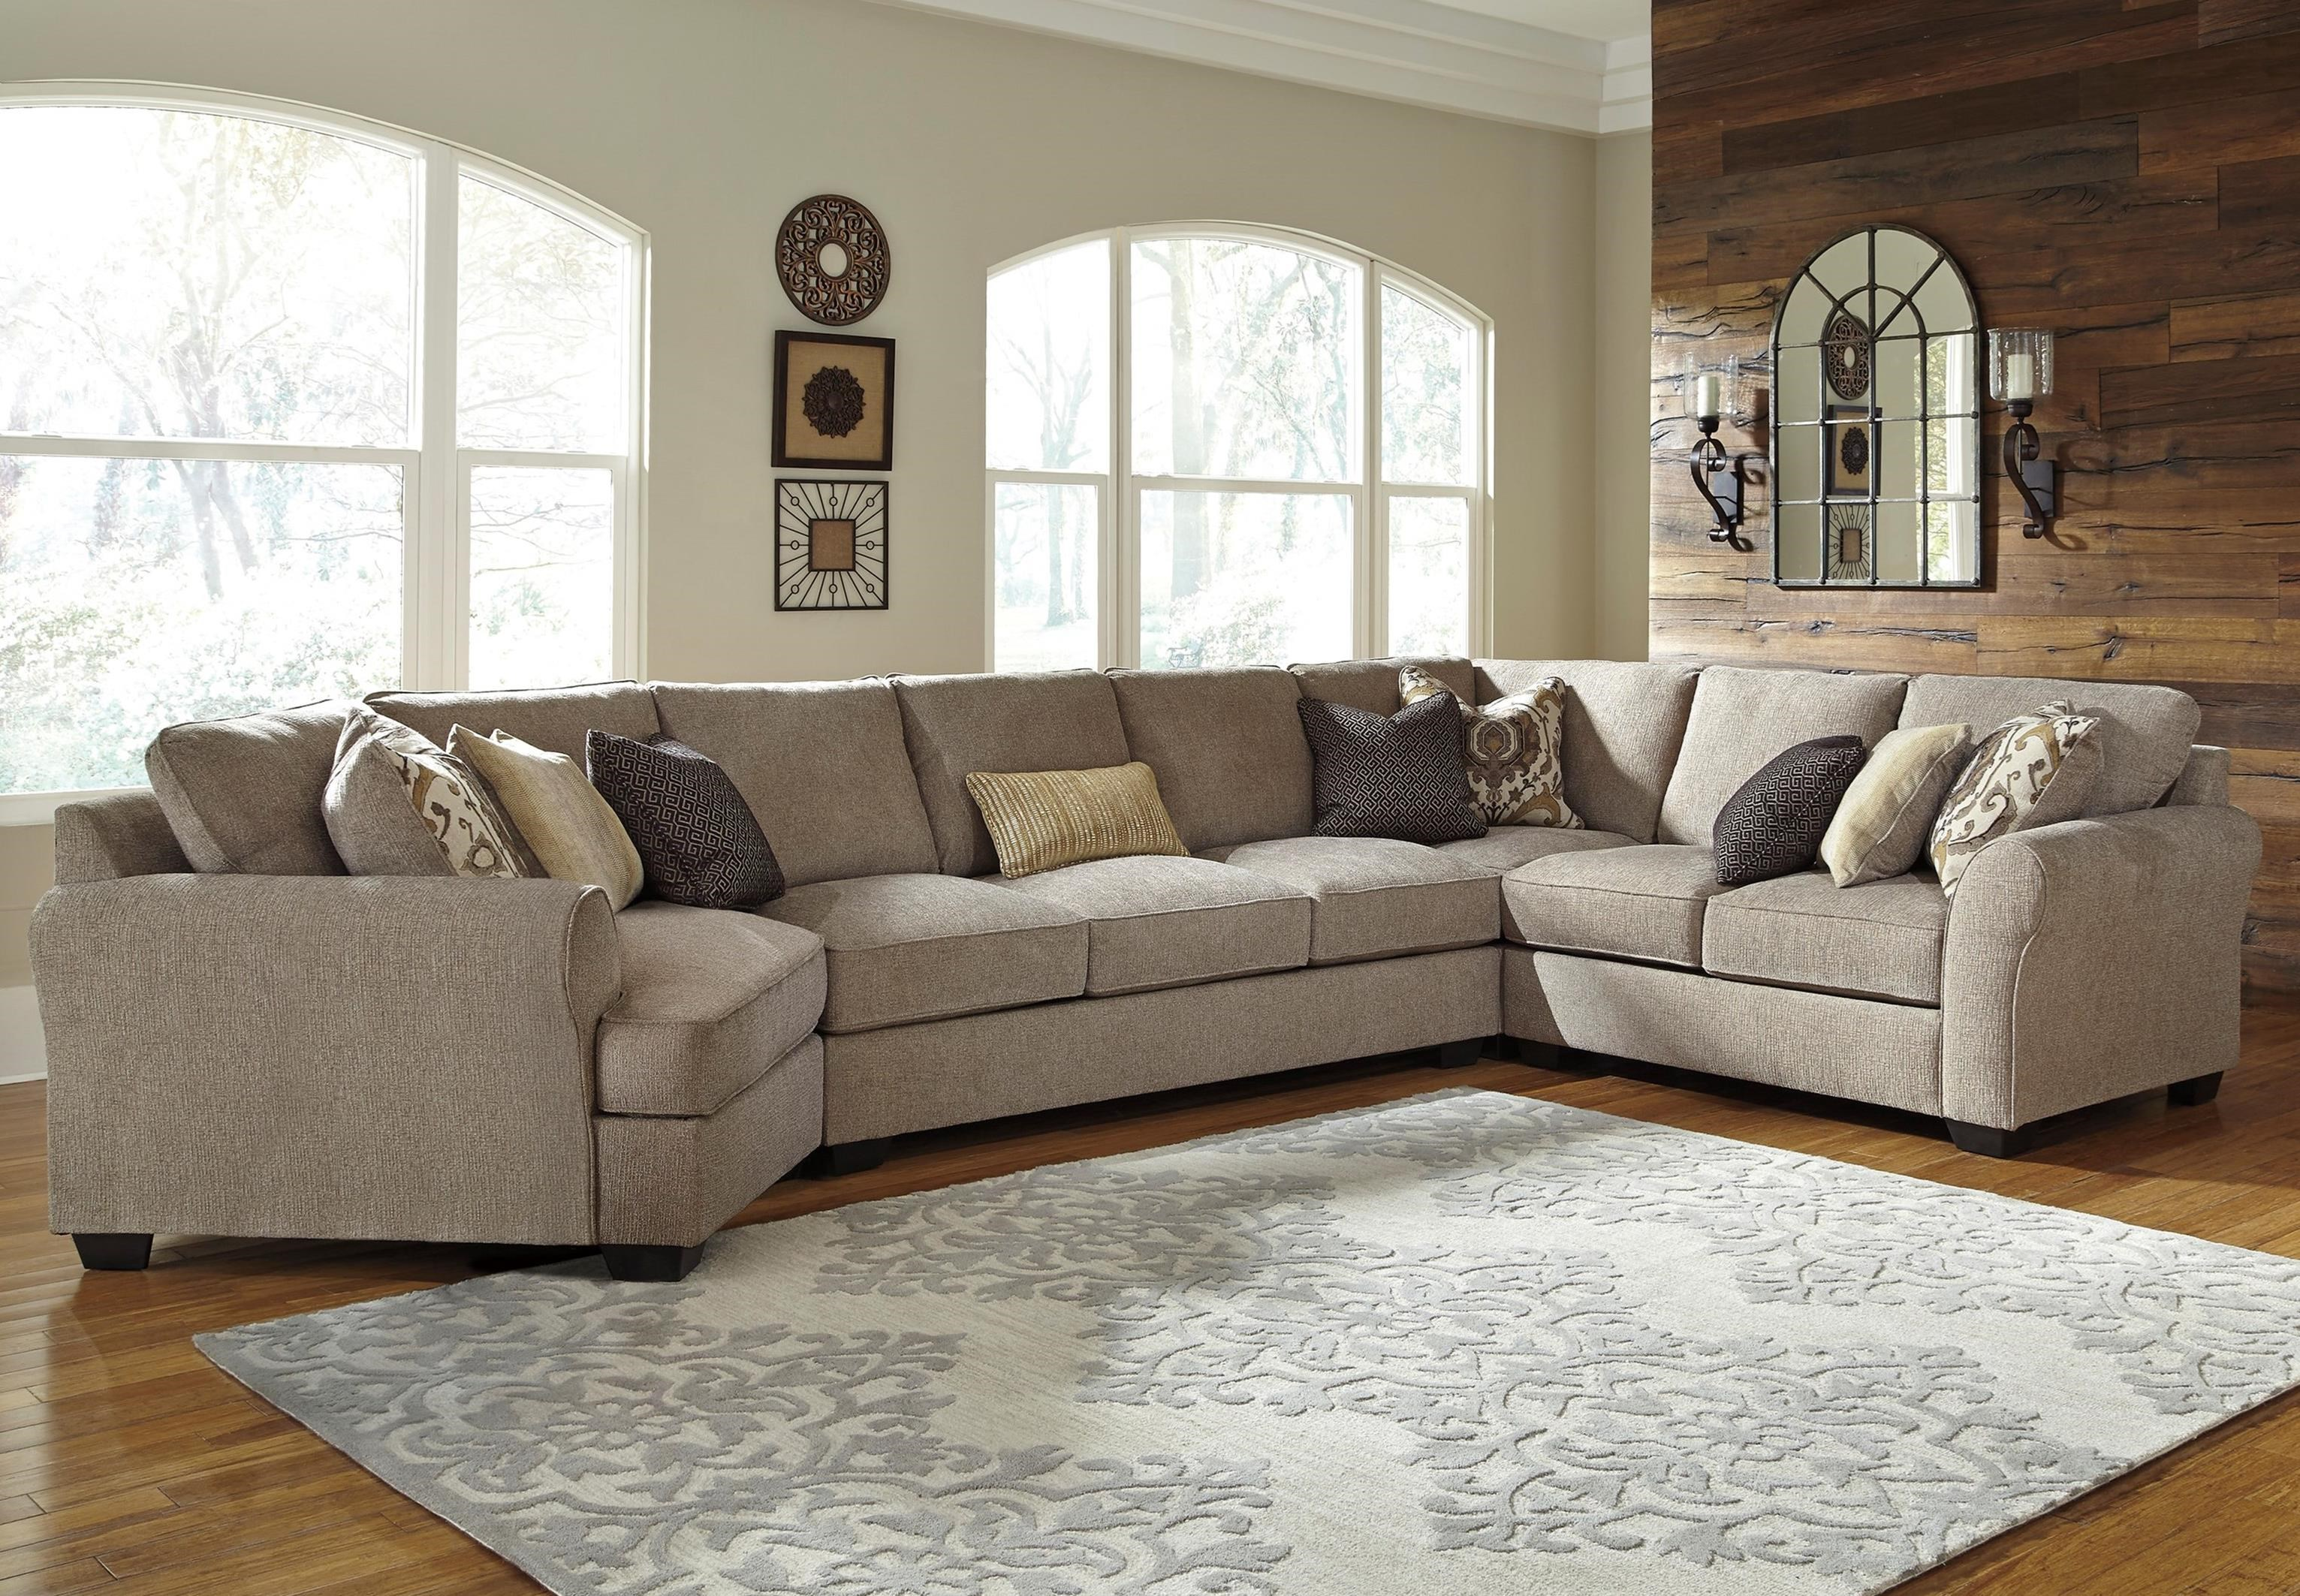 4-Piece Sectional with Left Cuddler u0026 Armless Sofa : left cuddler sectional - Sectionals, Sofas & Couches